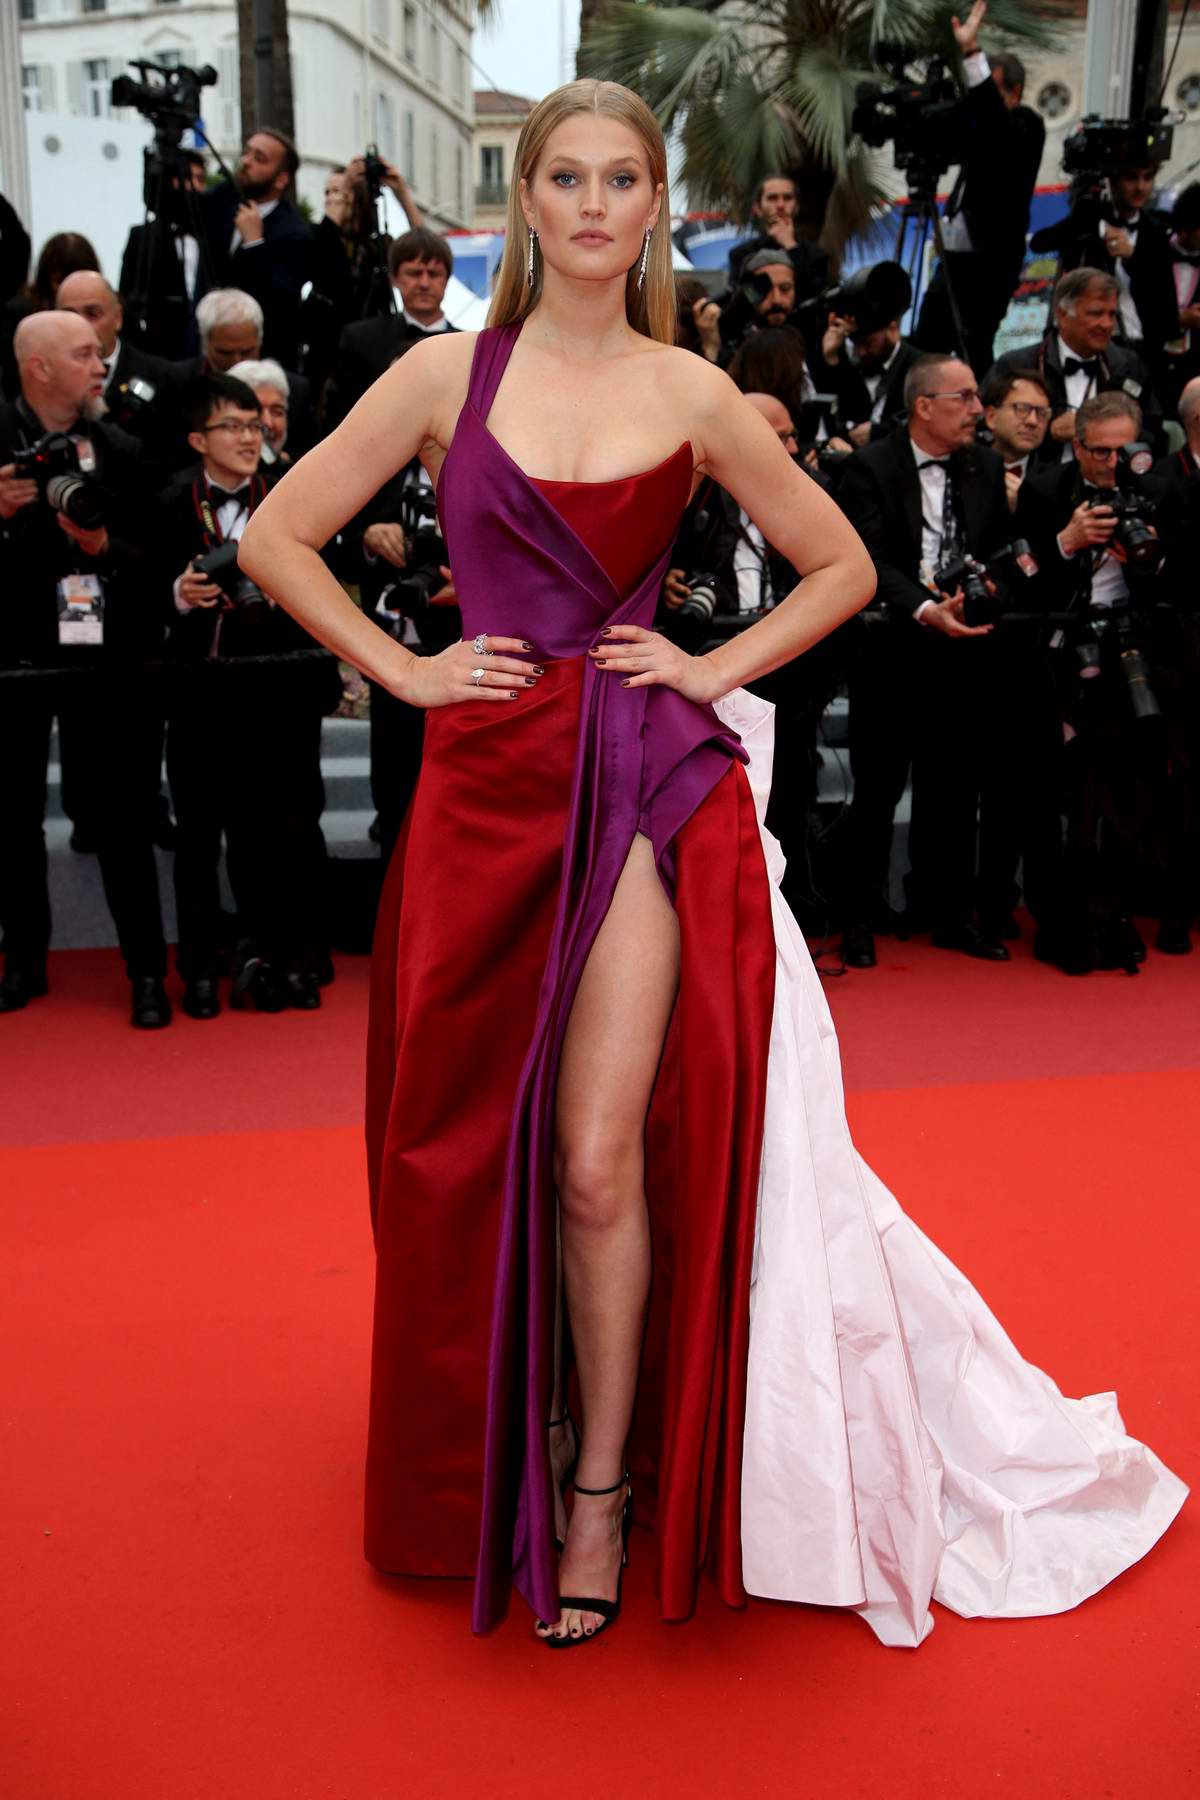 Toni Garrn attends the screening of 'Les Plus Belles Annees D'Une Vie' during the 72nd annual Cannes Film Festival in Cannes, France